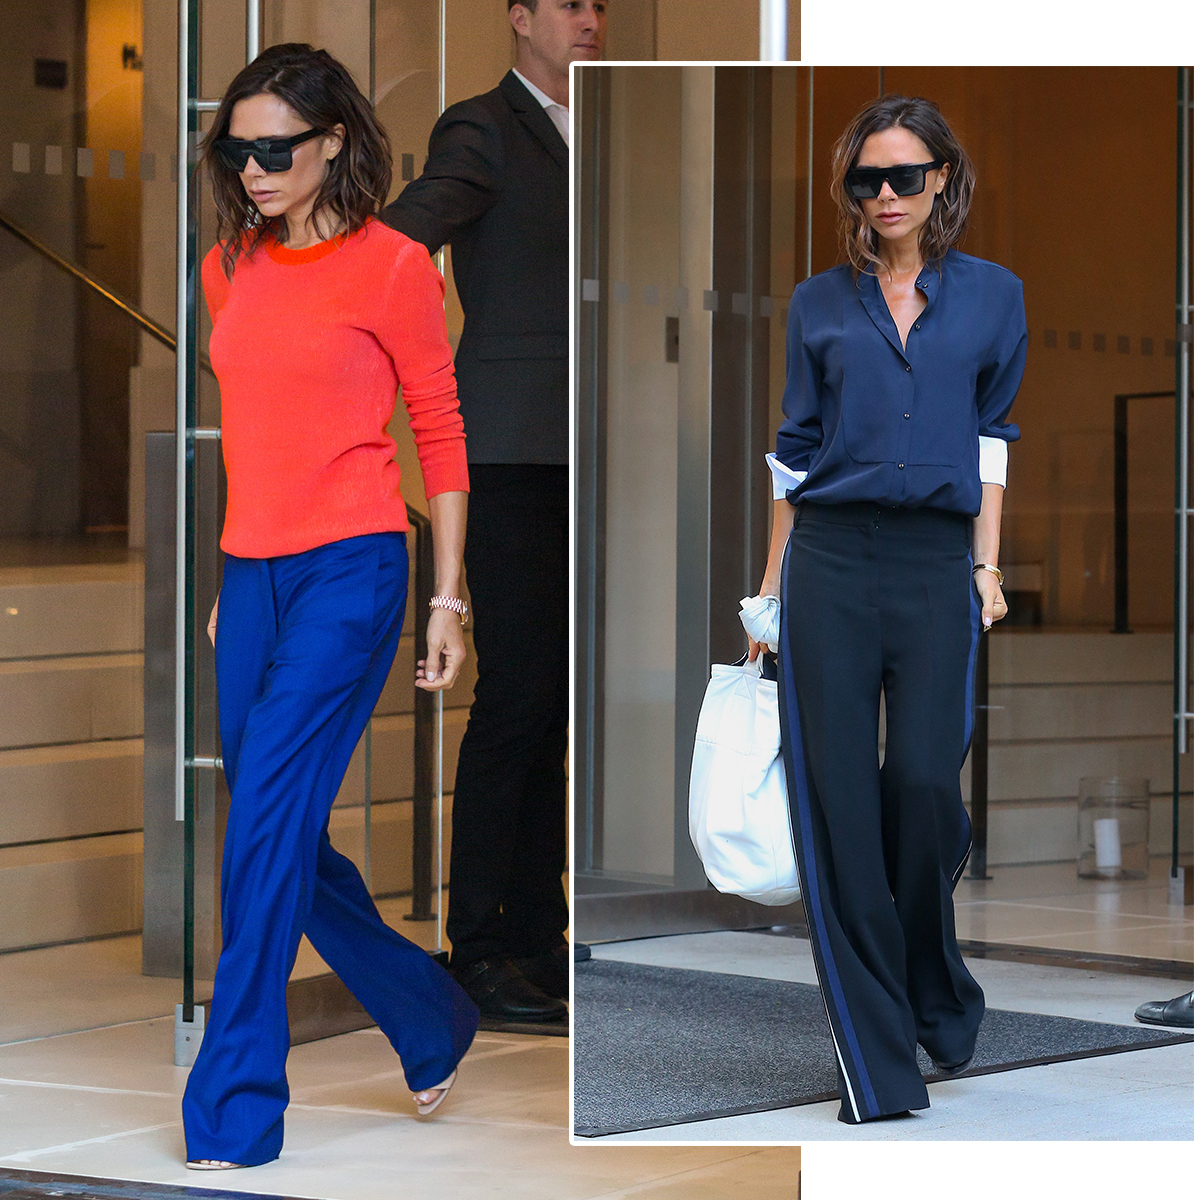 victoria-beckham-posh-style-new-york-fashion-week